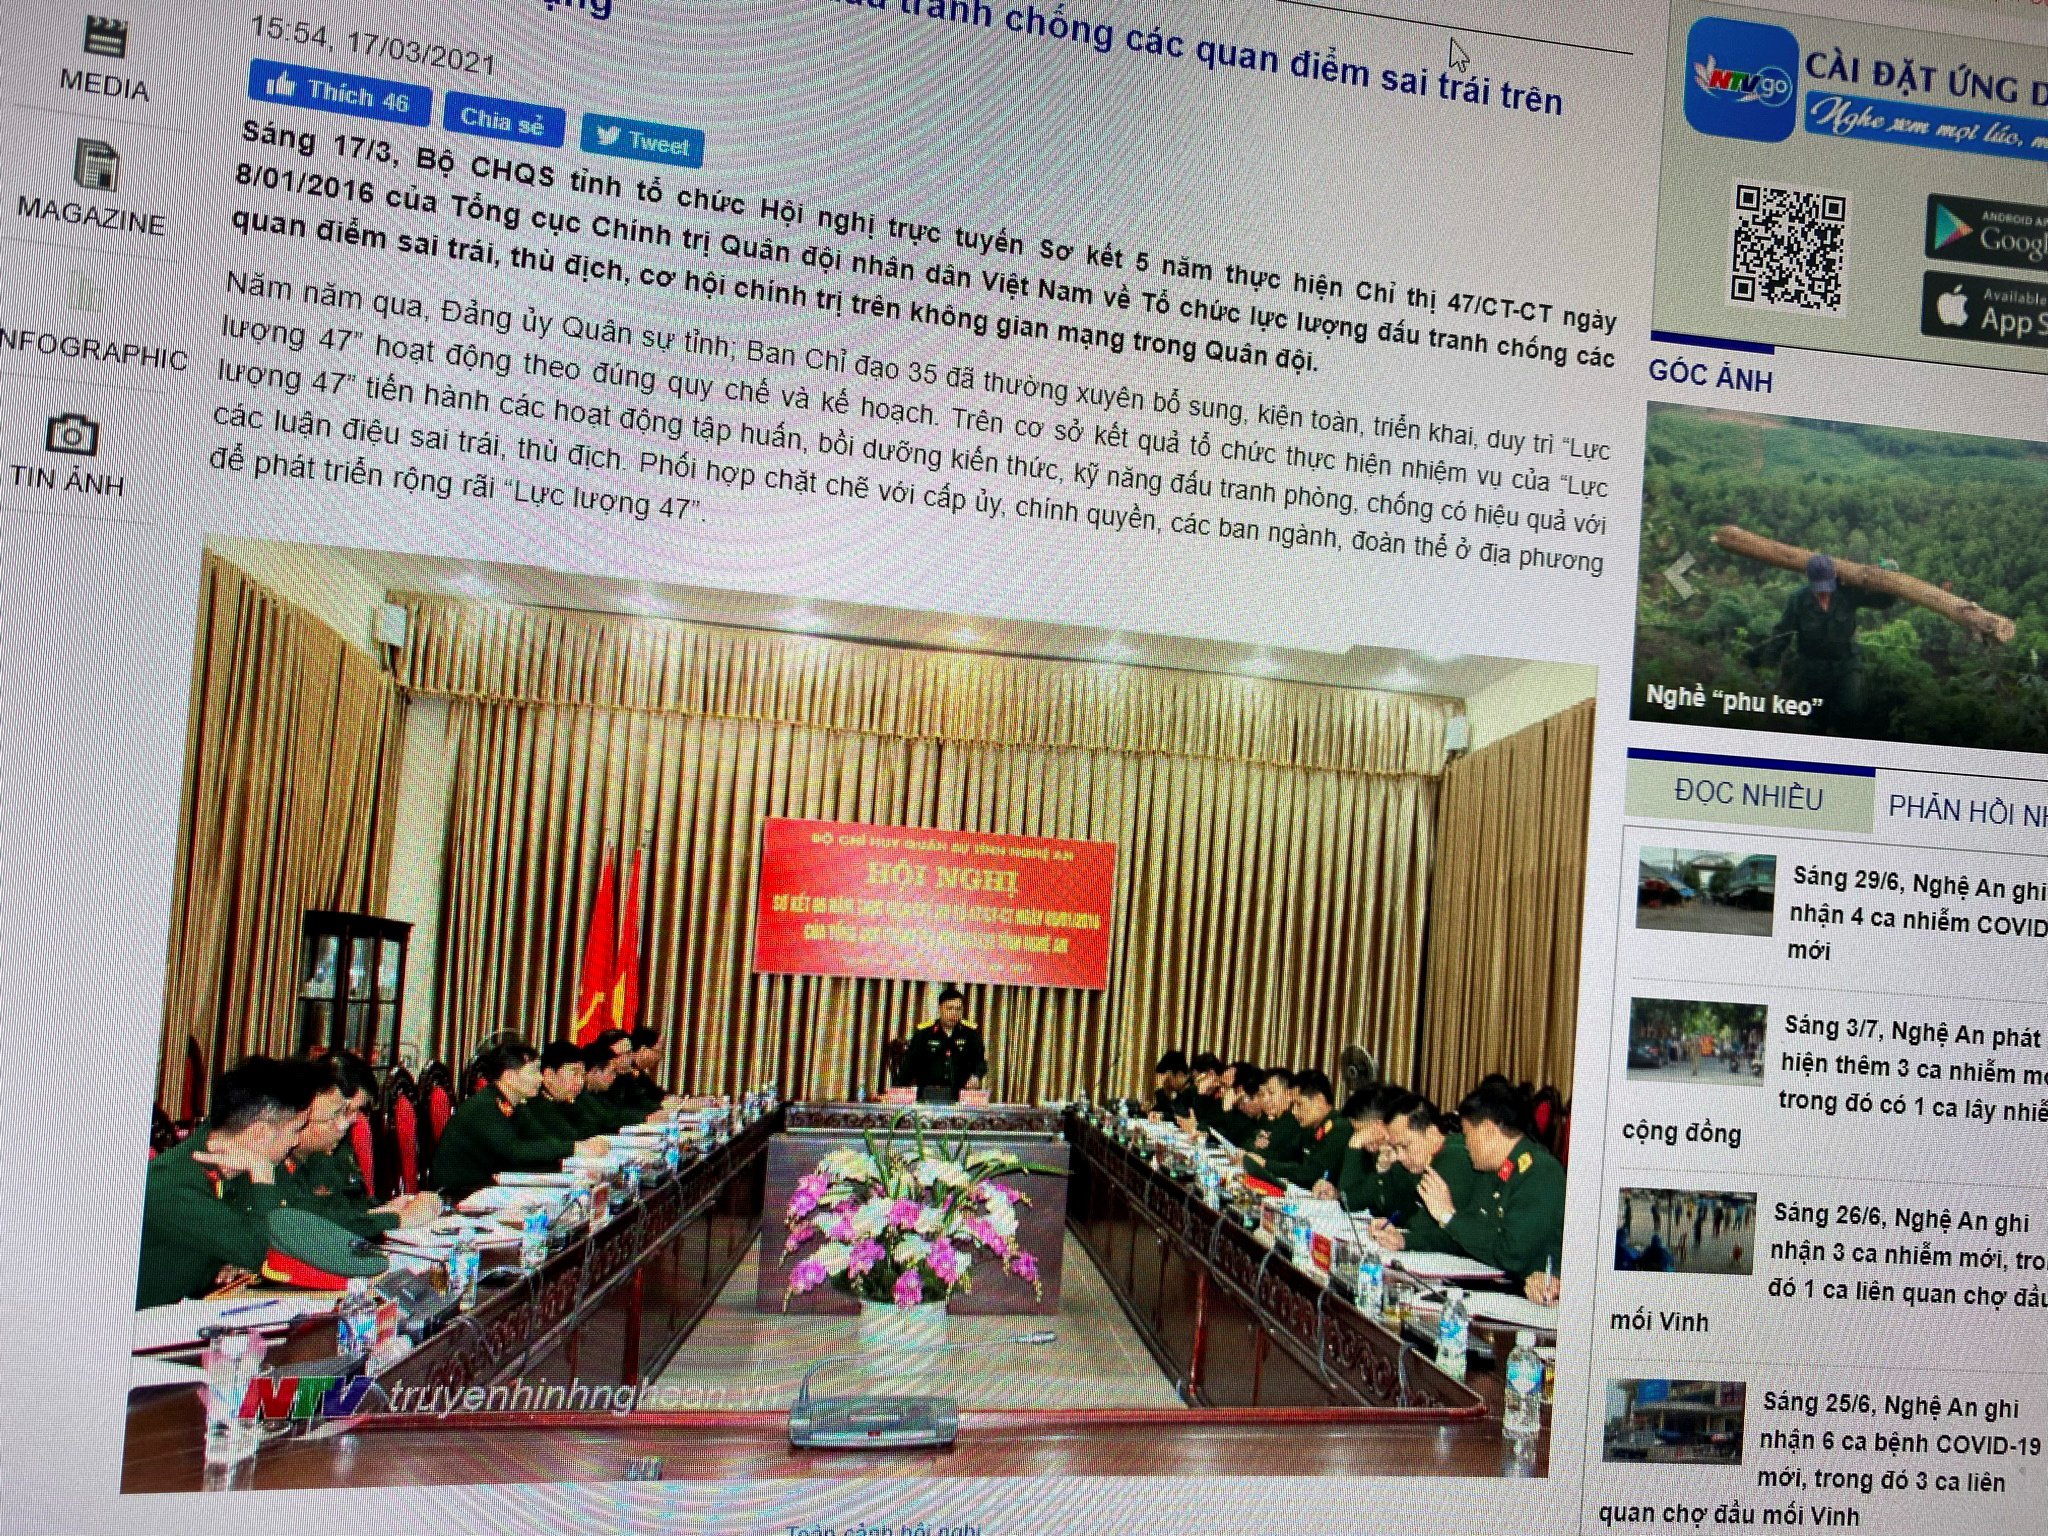 A state media article from March 17, 2021 with a picture of a meeting marking five years since the creation of Vietnam's 'Force 47' cyber army is displayed on screen in this picture takenJuly 8, 2021. TRUYENHINHNGHEAN.VN via REUTERS